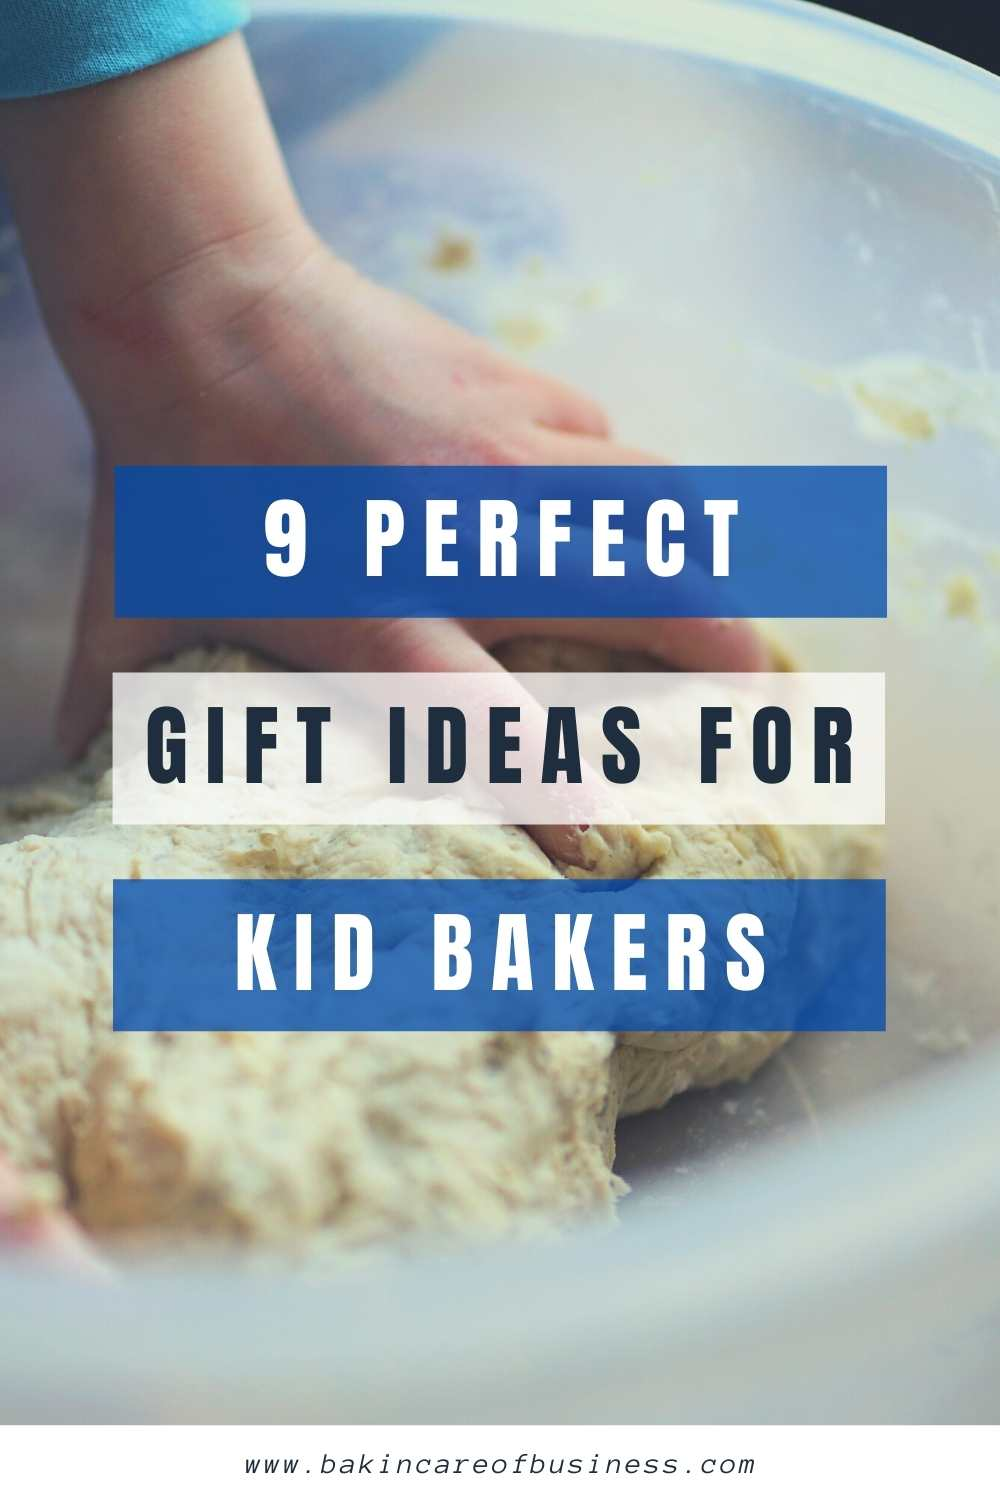 9-Perfect-Gift-Ideas-for-Kid-Bakers1